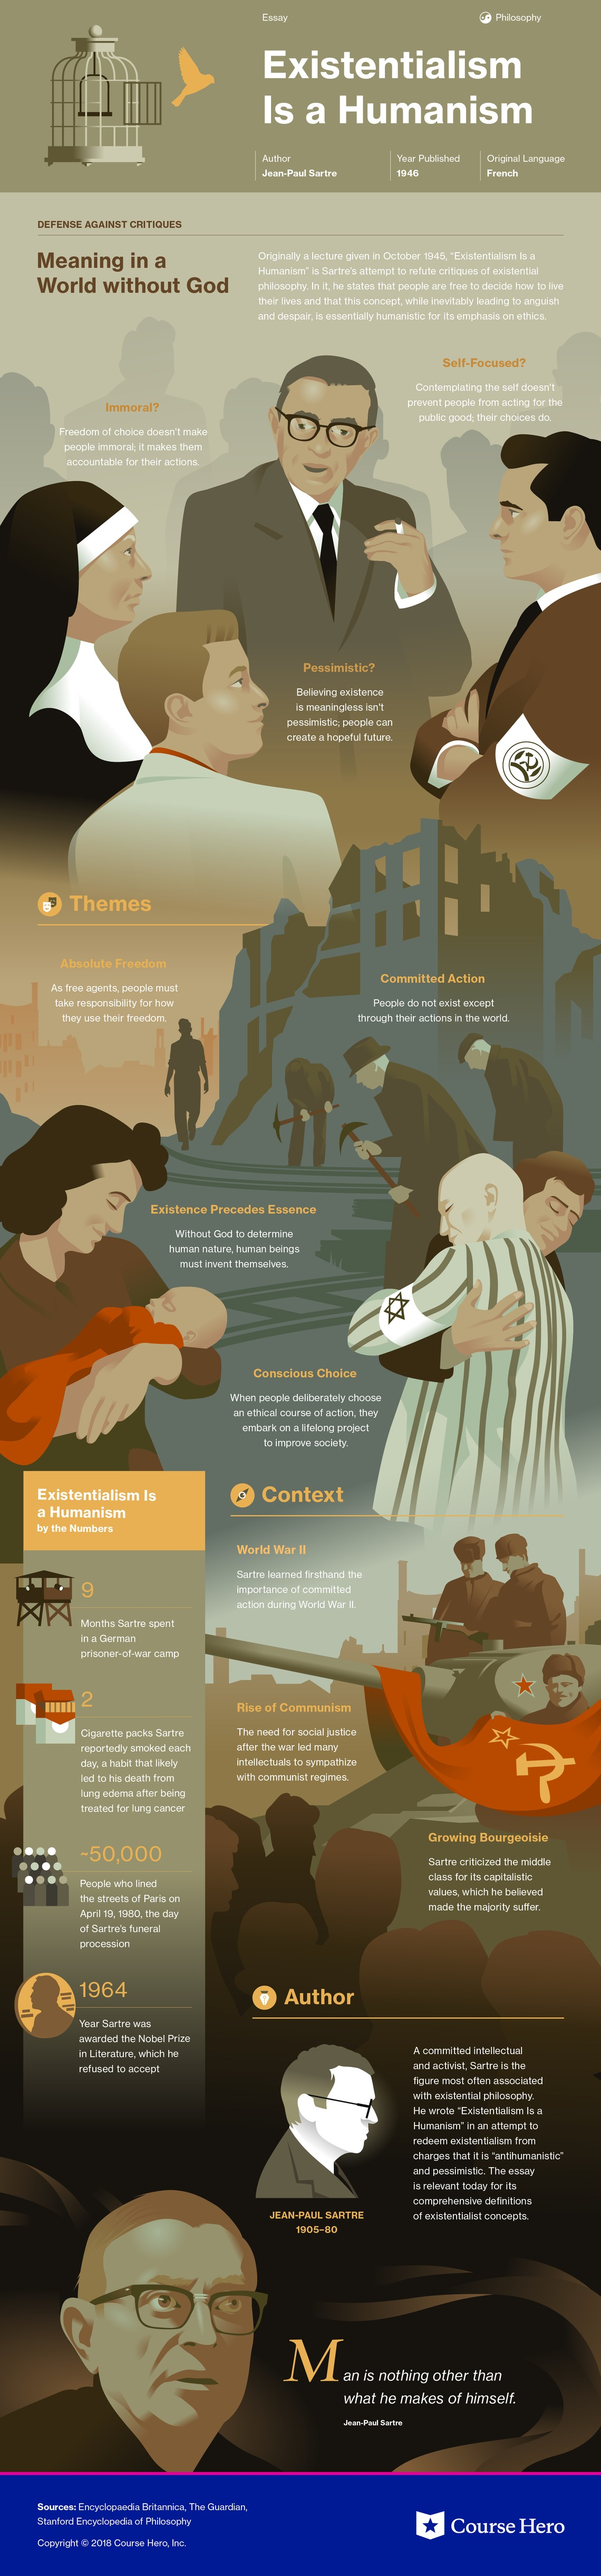 Existentialism Is a Humanism Infographic | Course Hero